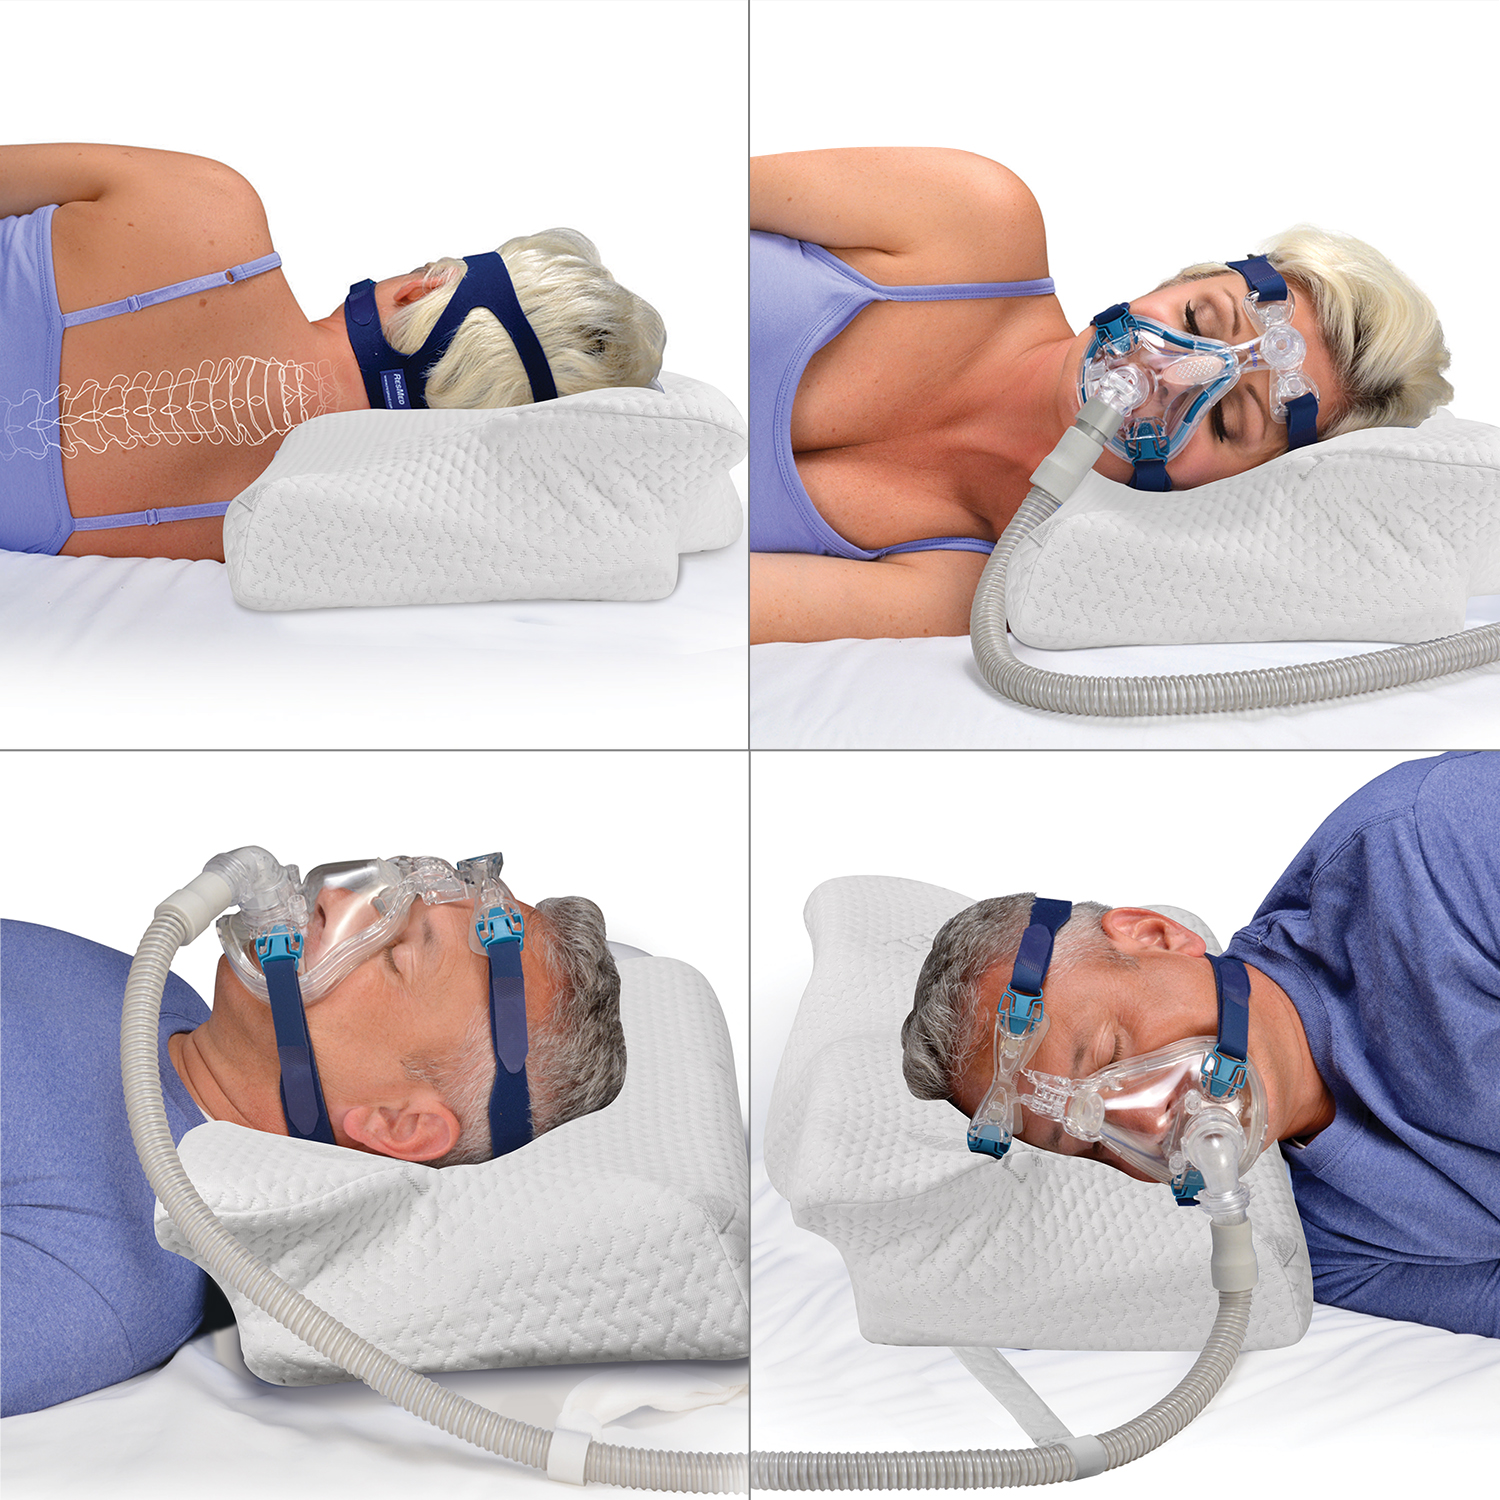 Image 2 - CPAP PillowMemory Foam Neck PillowMassage Ergonomic Anti snoring Sleeping Pillow Aid Bedding Supplies with Pillowcase-in Sleep & Snoring from Beauty & Health